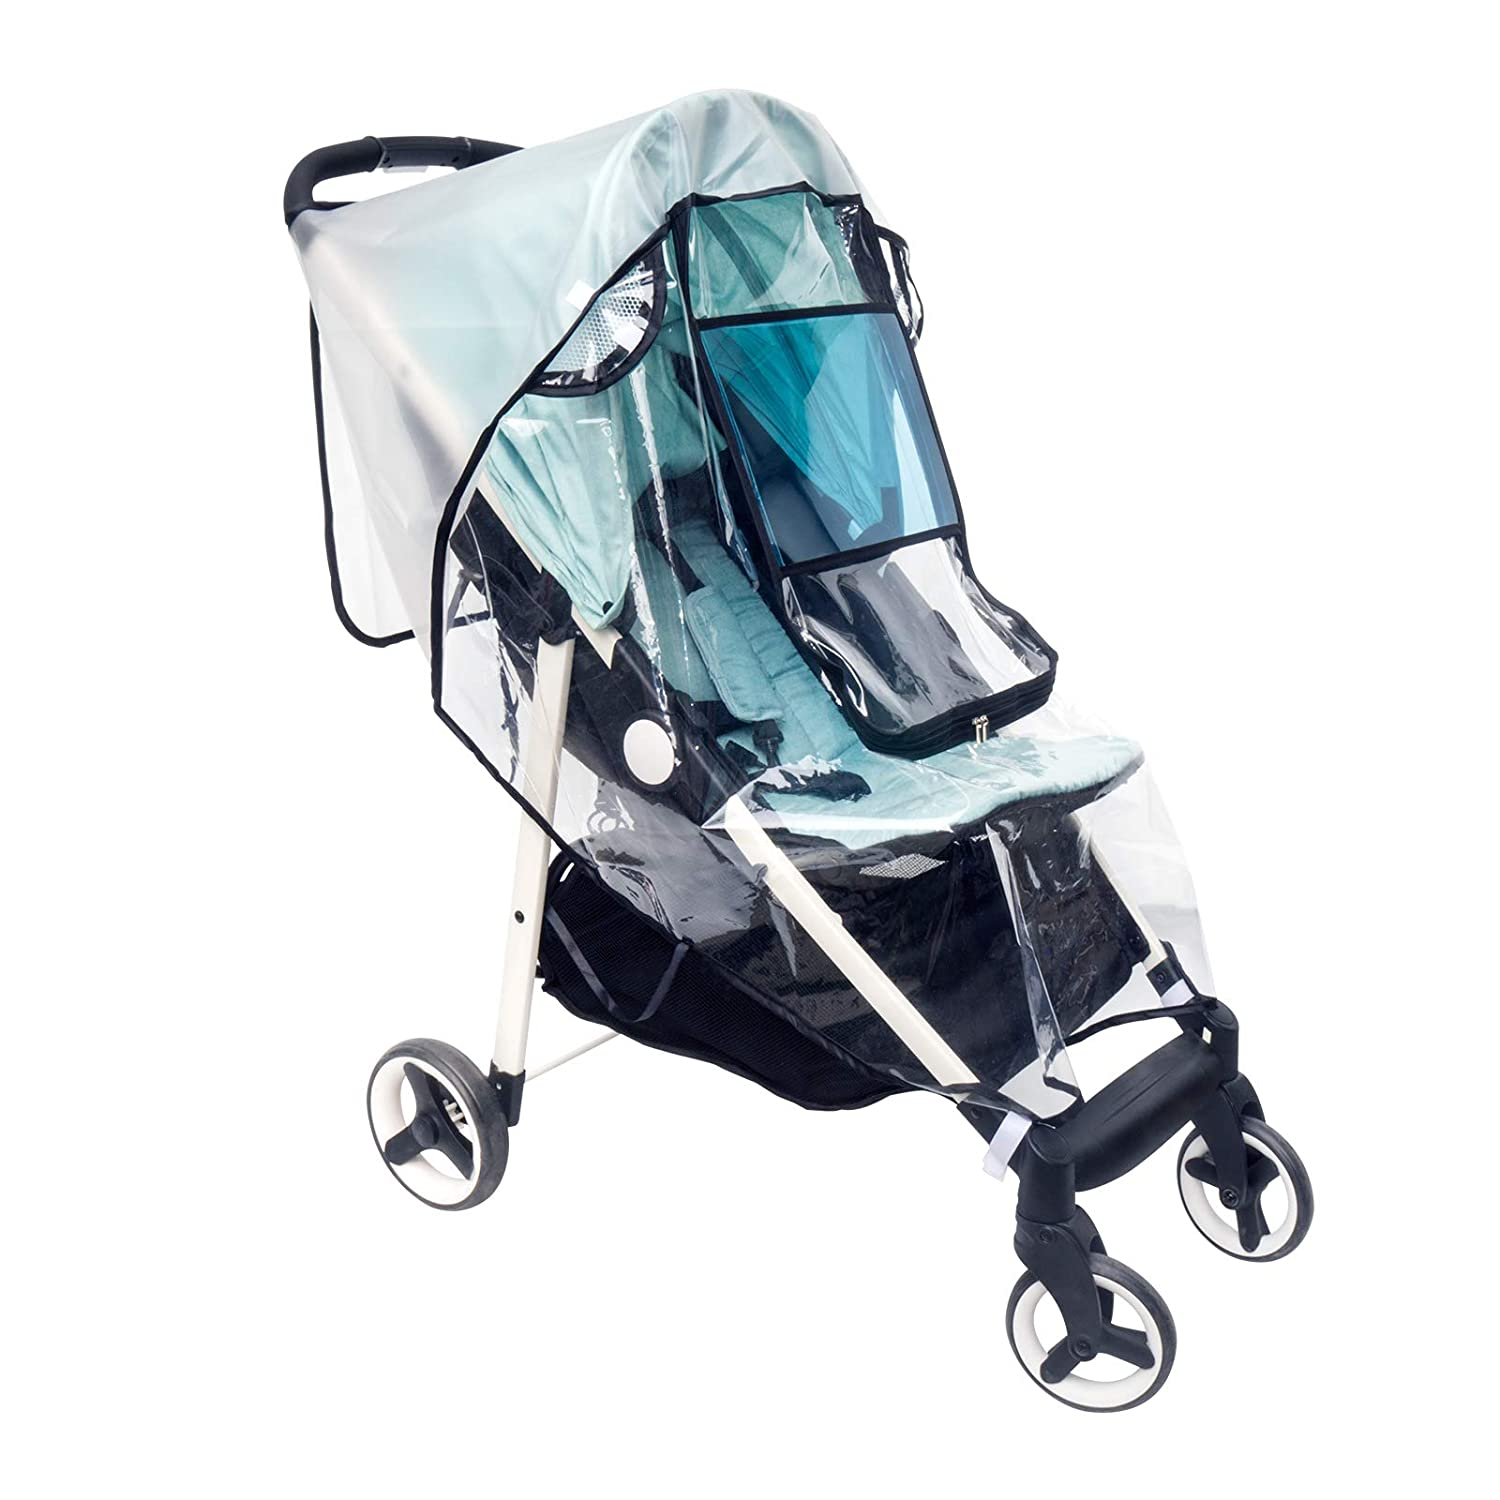 HOOMEE Stroller Rain | Wind Cover Universal, Pram Weather Shields, UV Protection Sun Cover For Pushchairs, Extra Mosquito Net Provided.